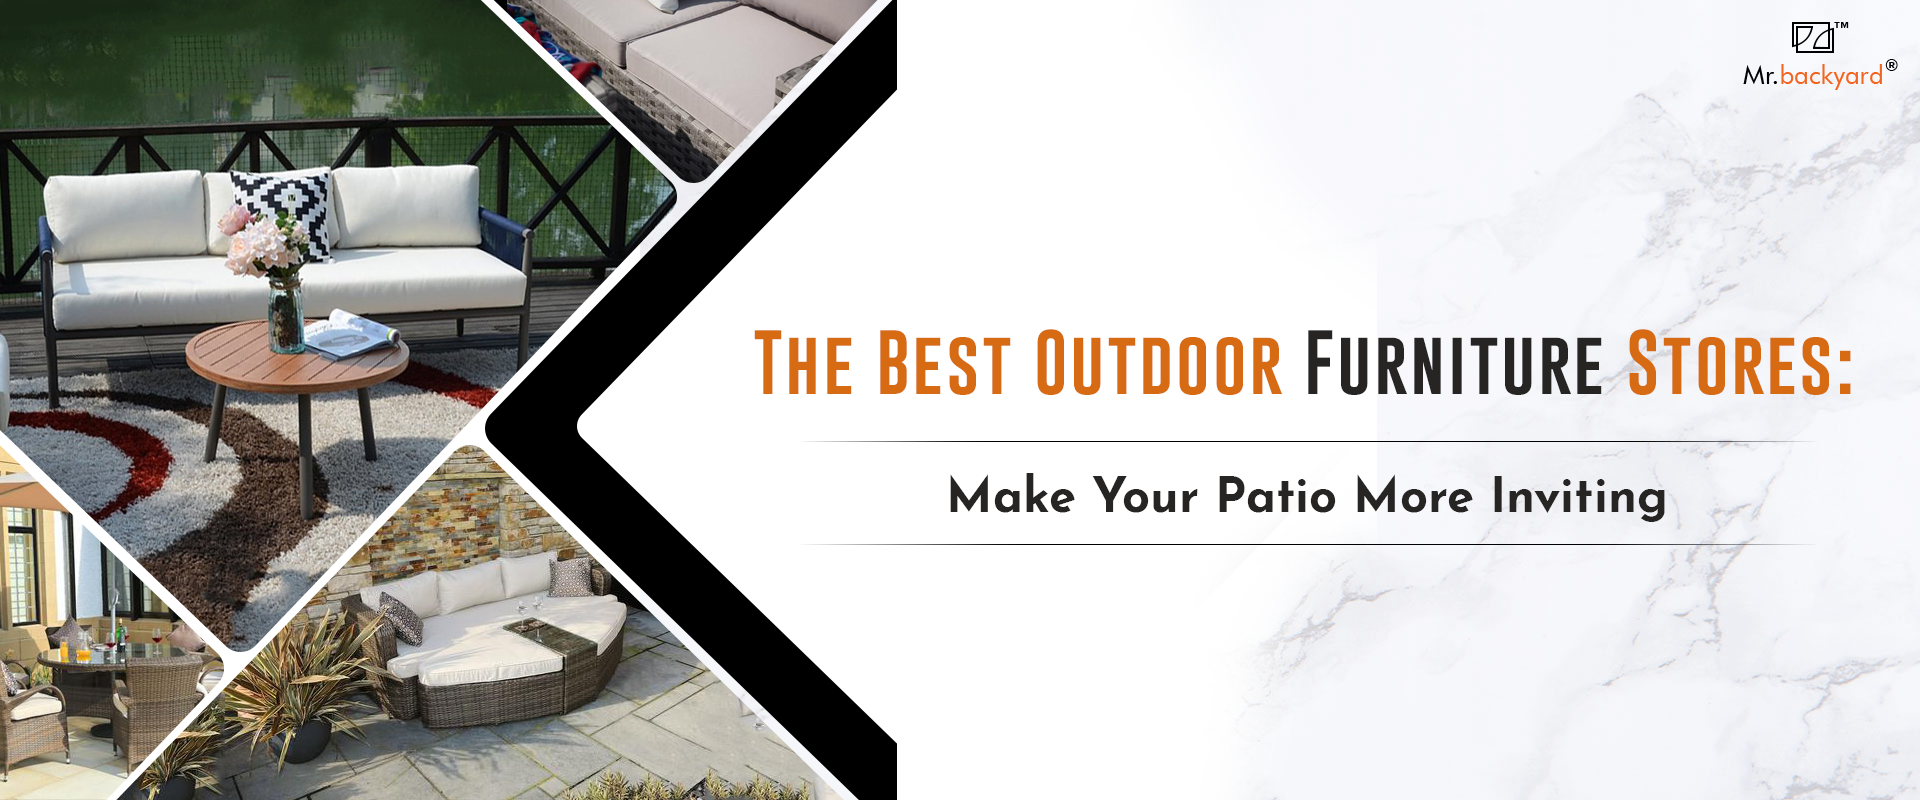 The Best Outdoor Furniture Stores: Make Your Patio More Inviting